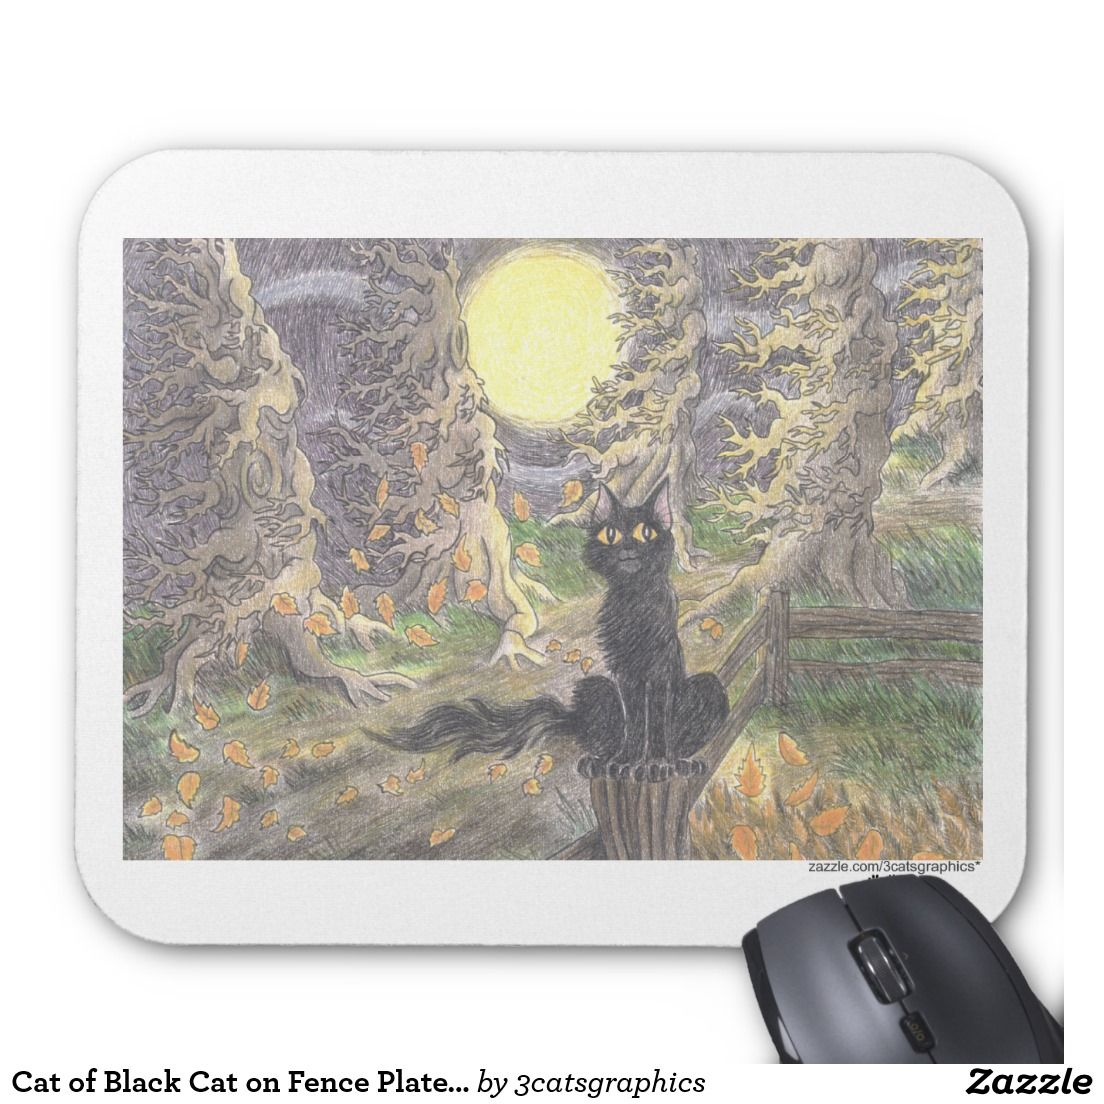 Cat of Black Cat on Fence Plate 1 Mouse Pad Black cat